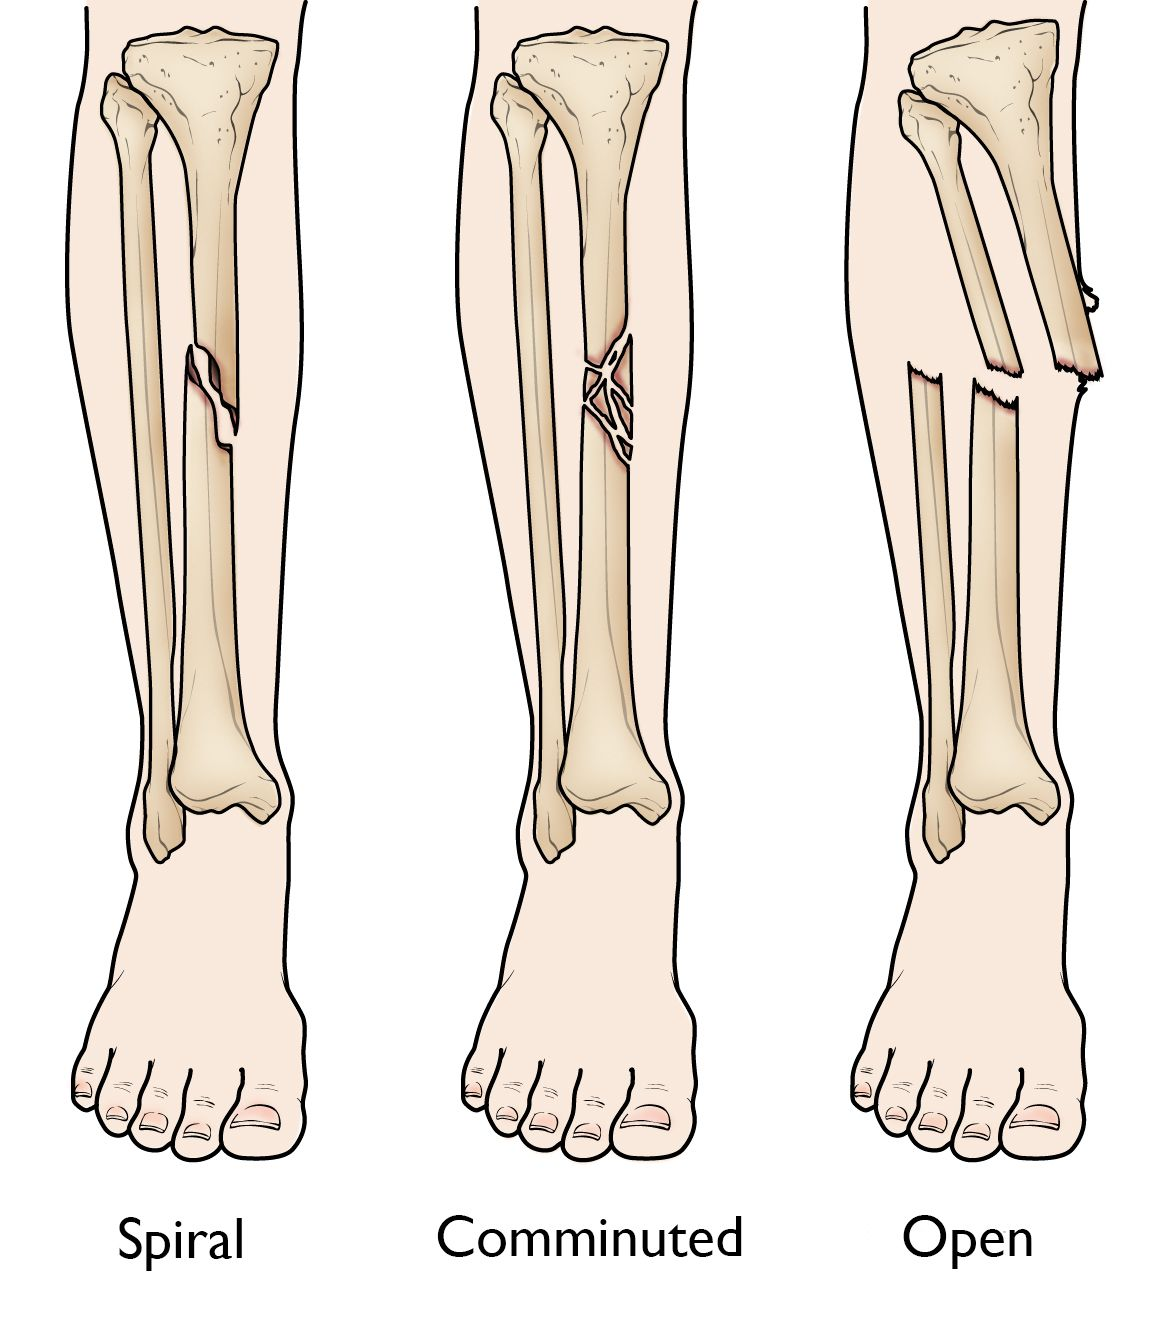 hight resolution of spiral comminuted and open tibial shaft fractures